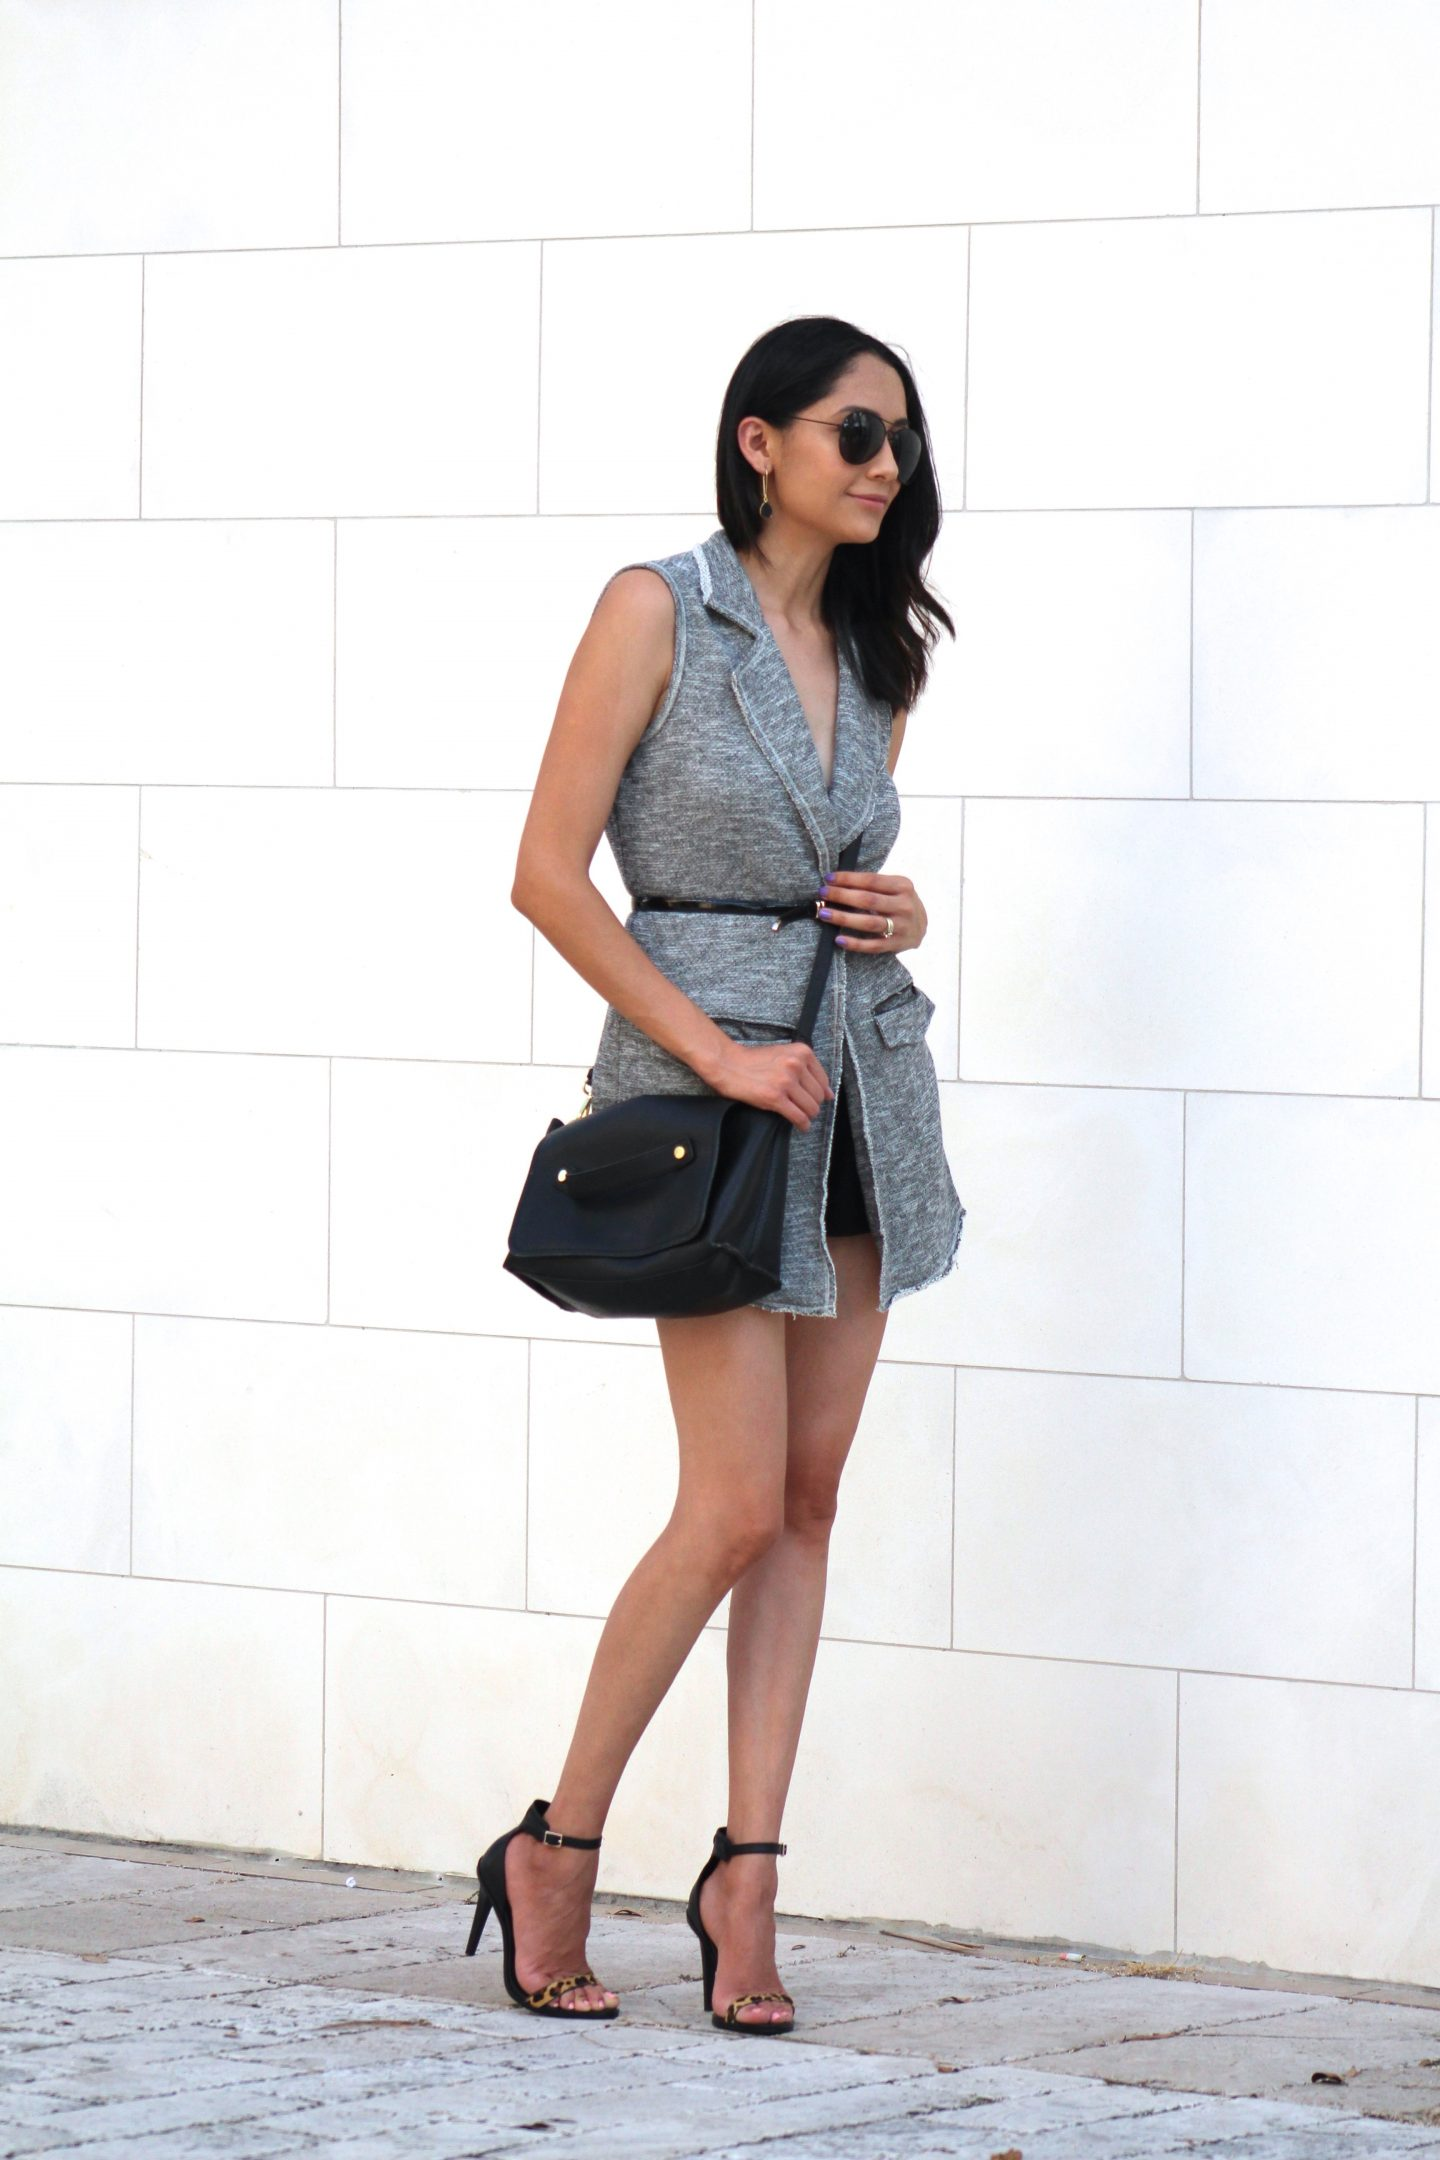 3 Tips For adding Knits to Your Summer Look